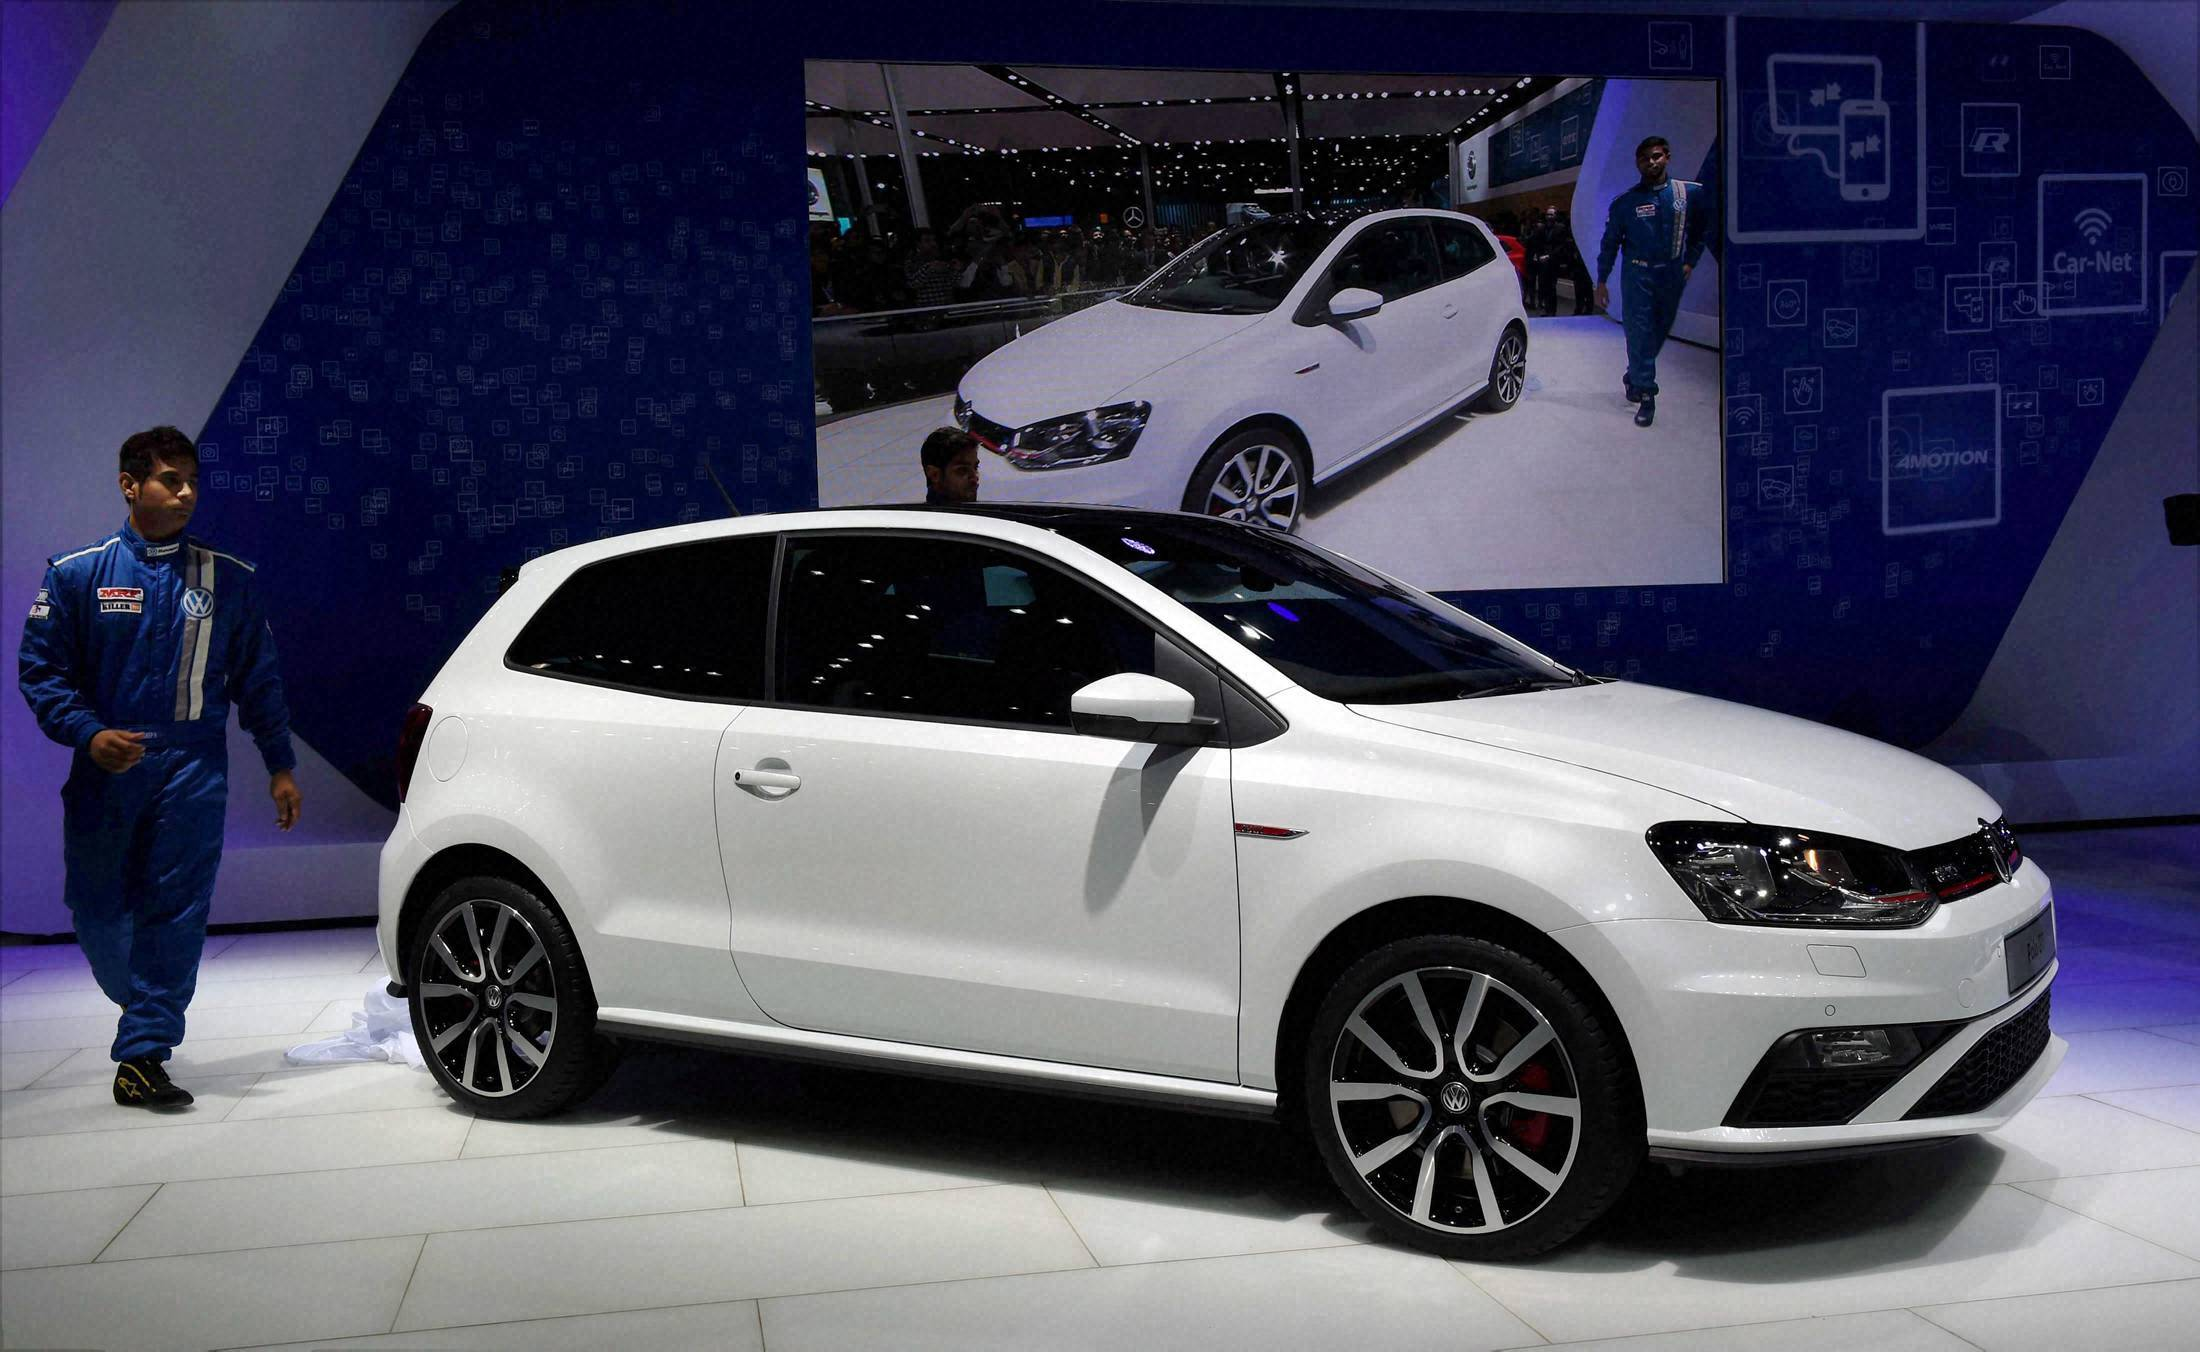 polo gti launch at auto expo 2016 business standard news. Black Bedroom Furniture Sets. Home Design Ideas